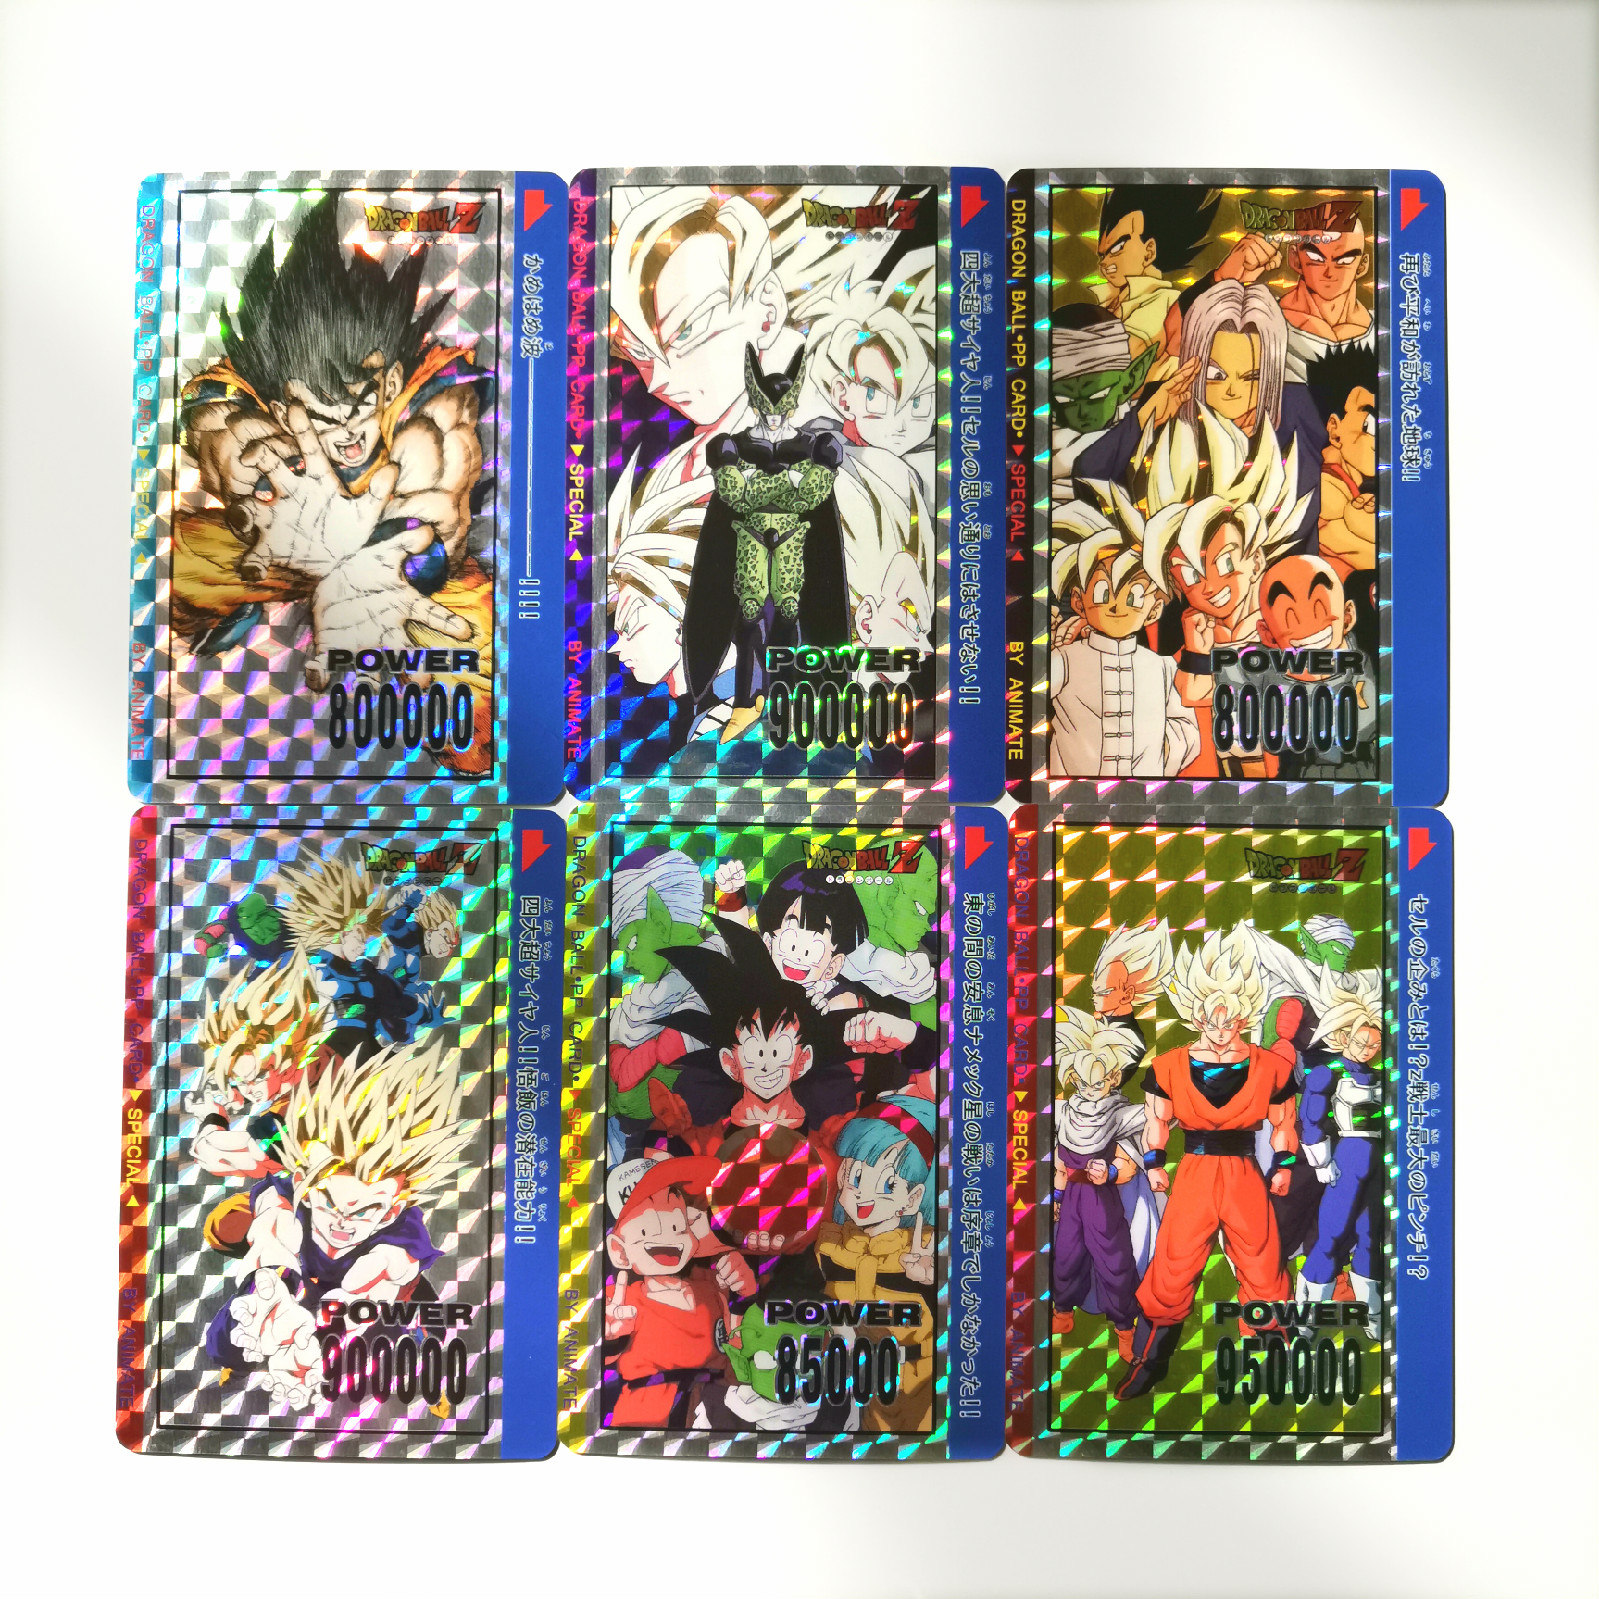 10pcs/set Super Dragon Ball Z PP Heroes Battle Card Ultra Instinct Goku Vegeta Game Collection Cards